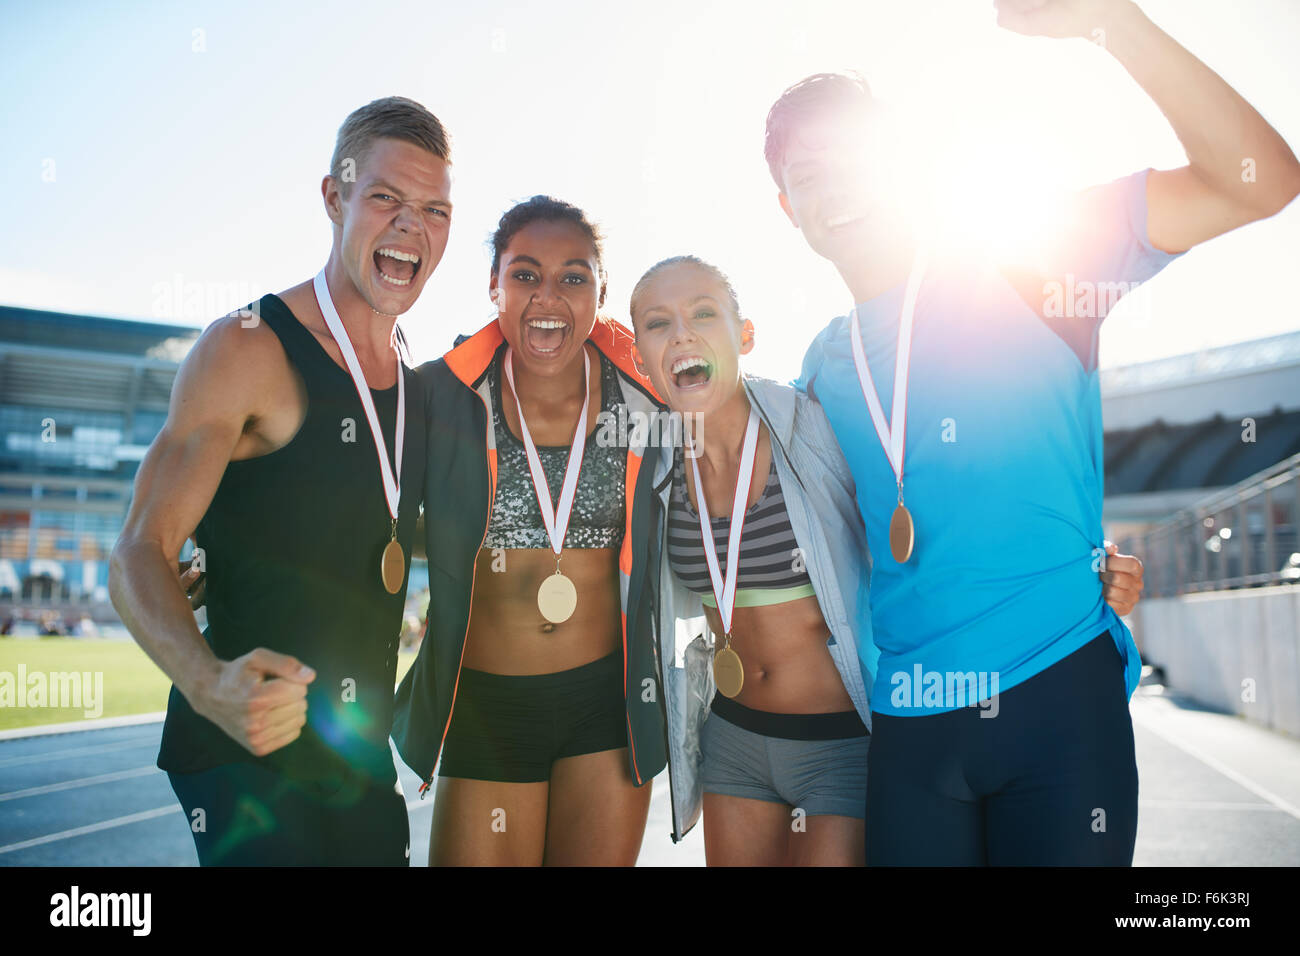 Portrait of ecstatic young runners with medals celebrating success in athletics stadium. Young men and women looking - Stock Image